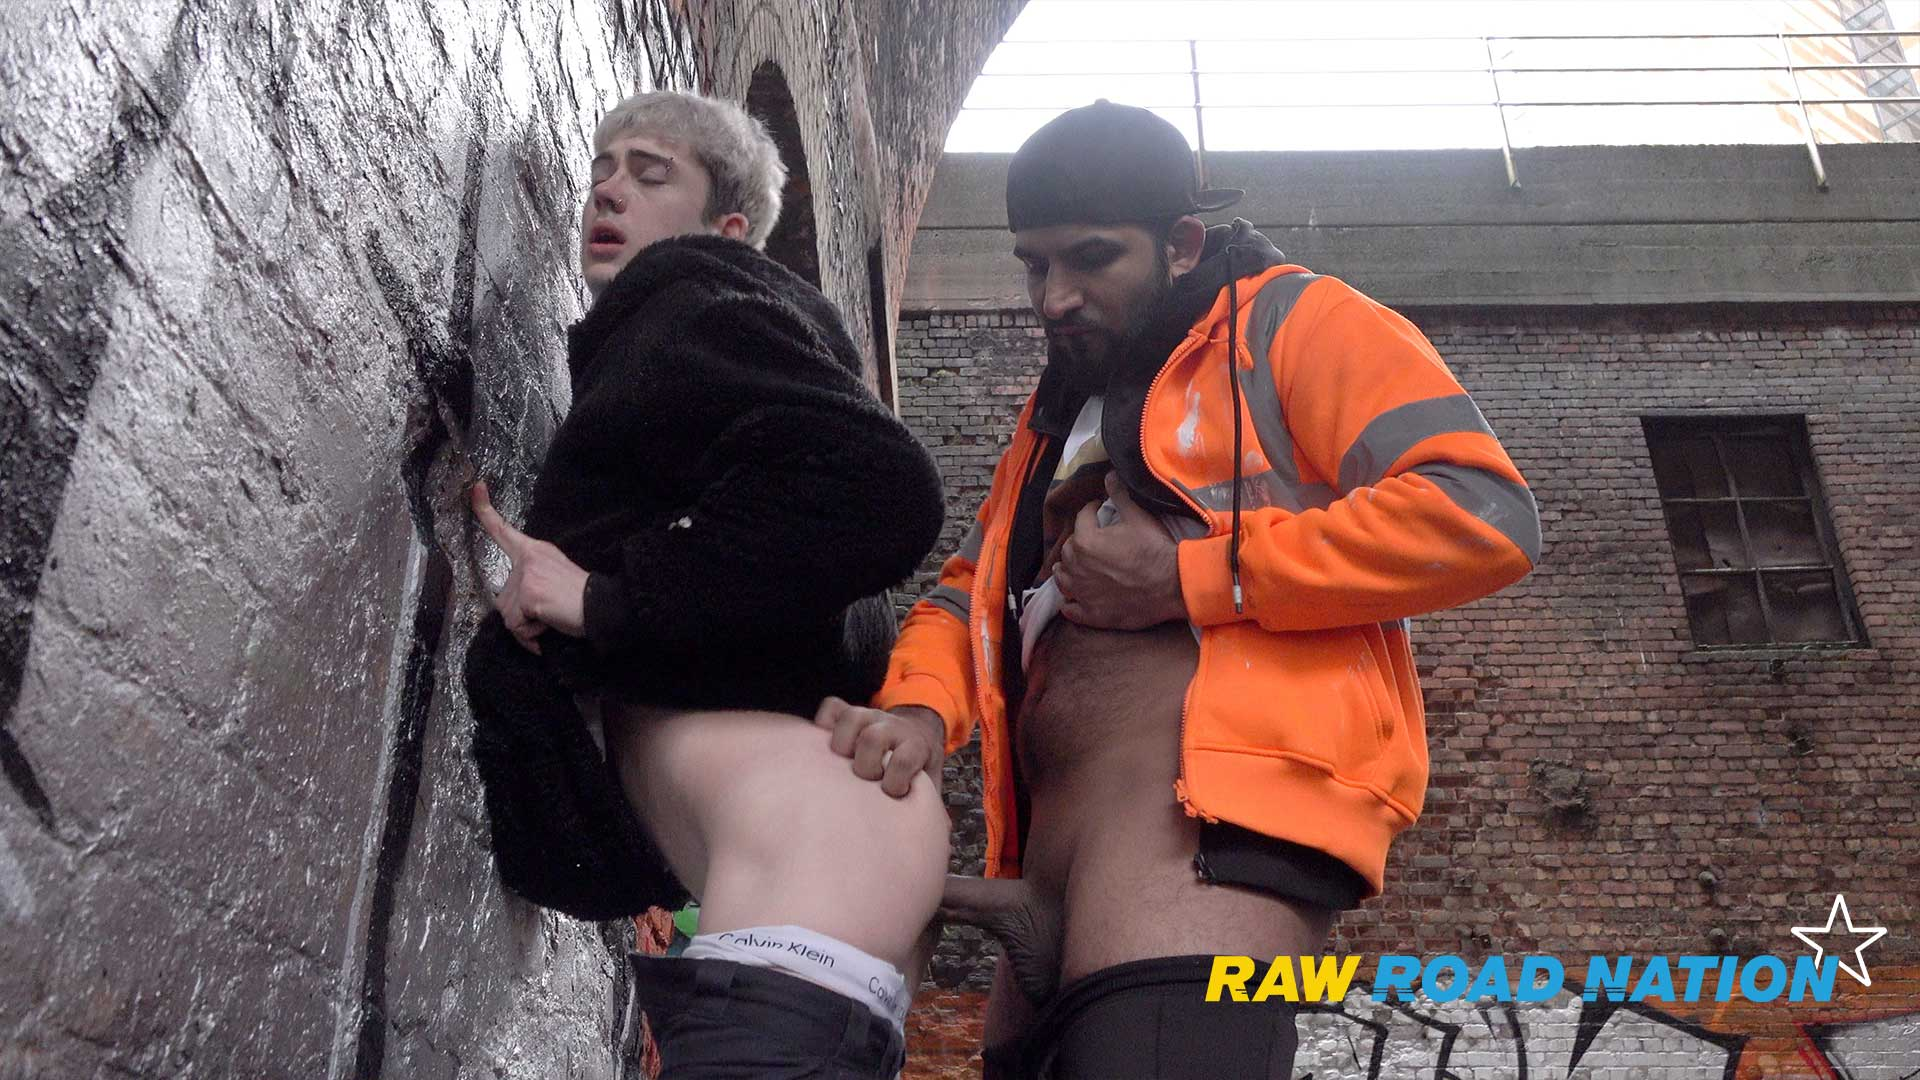 """Jafar XXX Gives Jake C. A Proper Dick Whipping In Raw Road Nation's """"Two Tradies"""""""